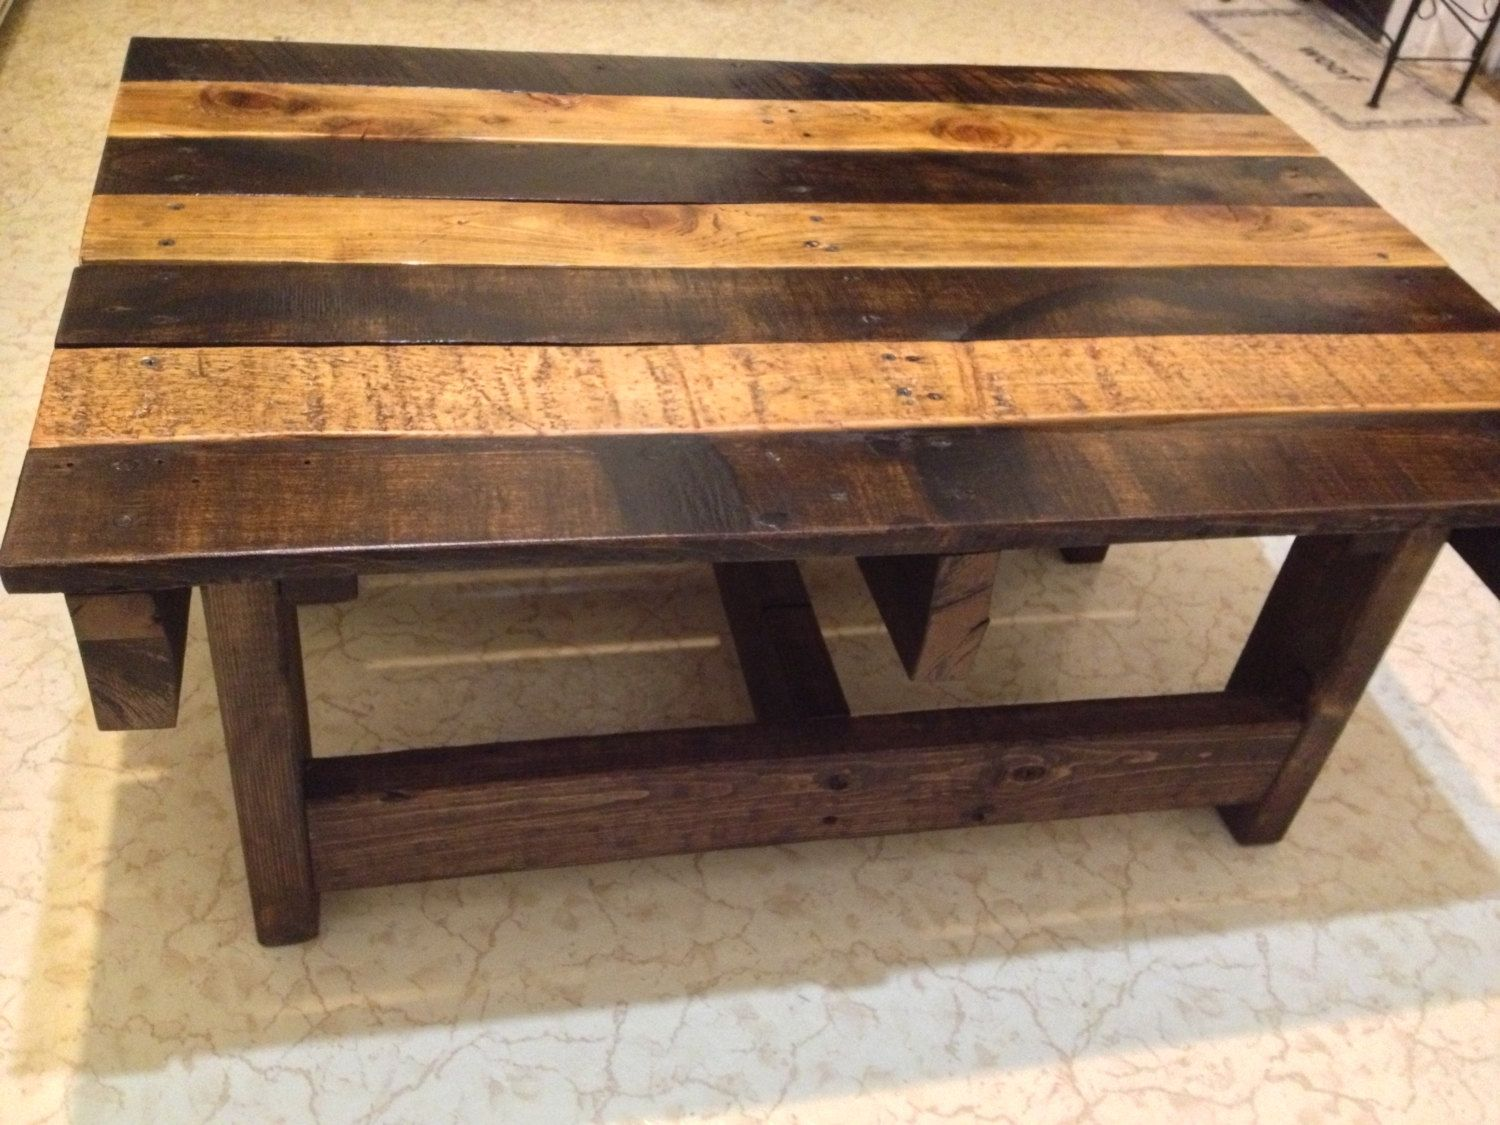 Hand Crafted Handmade Reclaimed Rustic Pallet Wood Coffee Table by Kevin Davis WoodWork ...